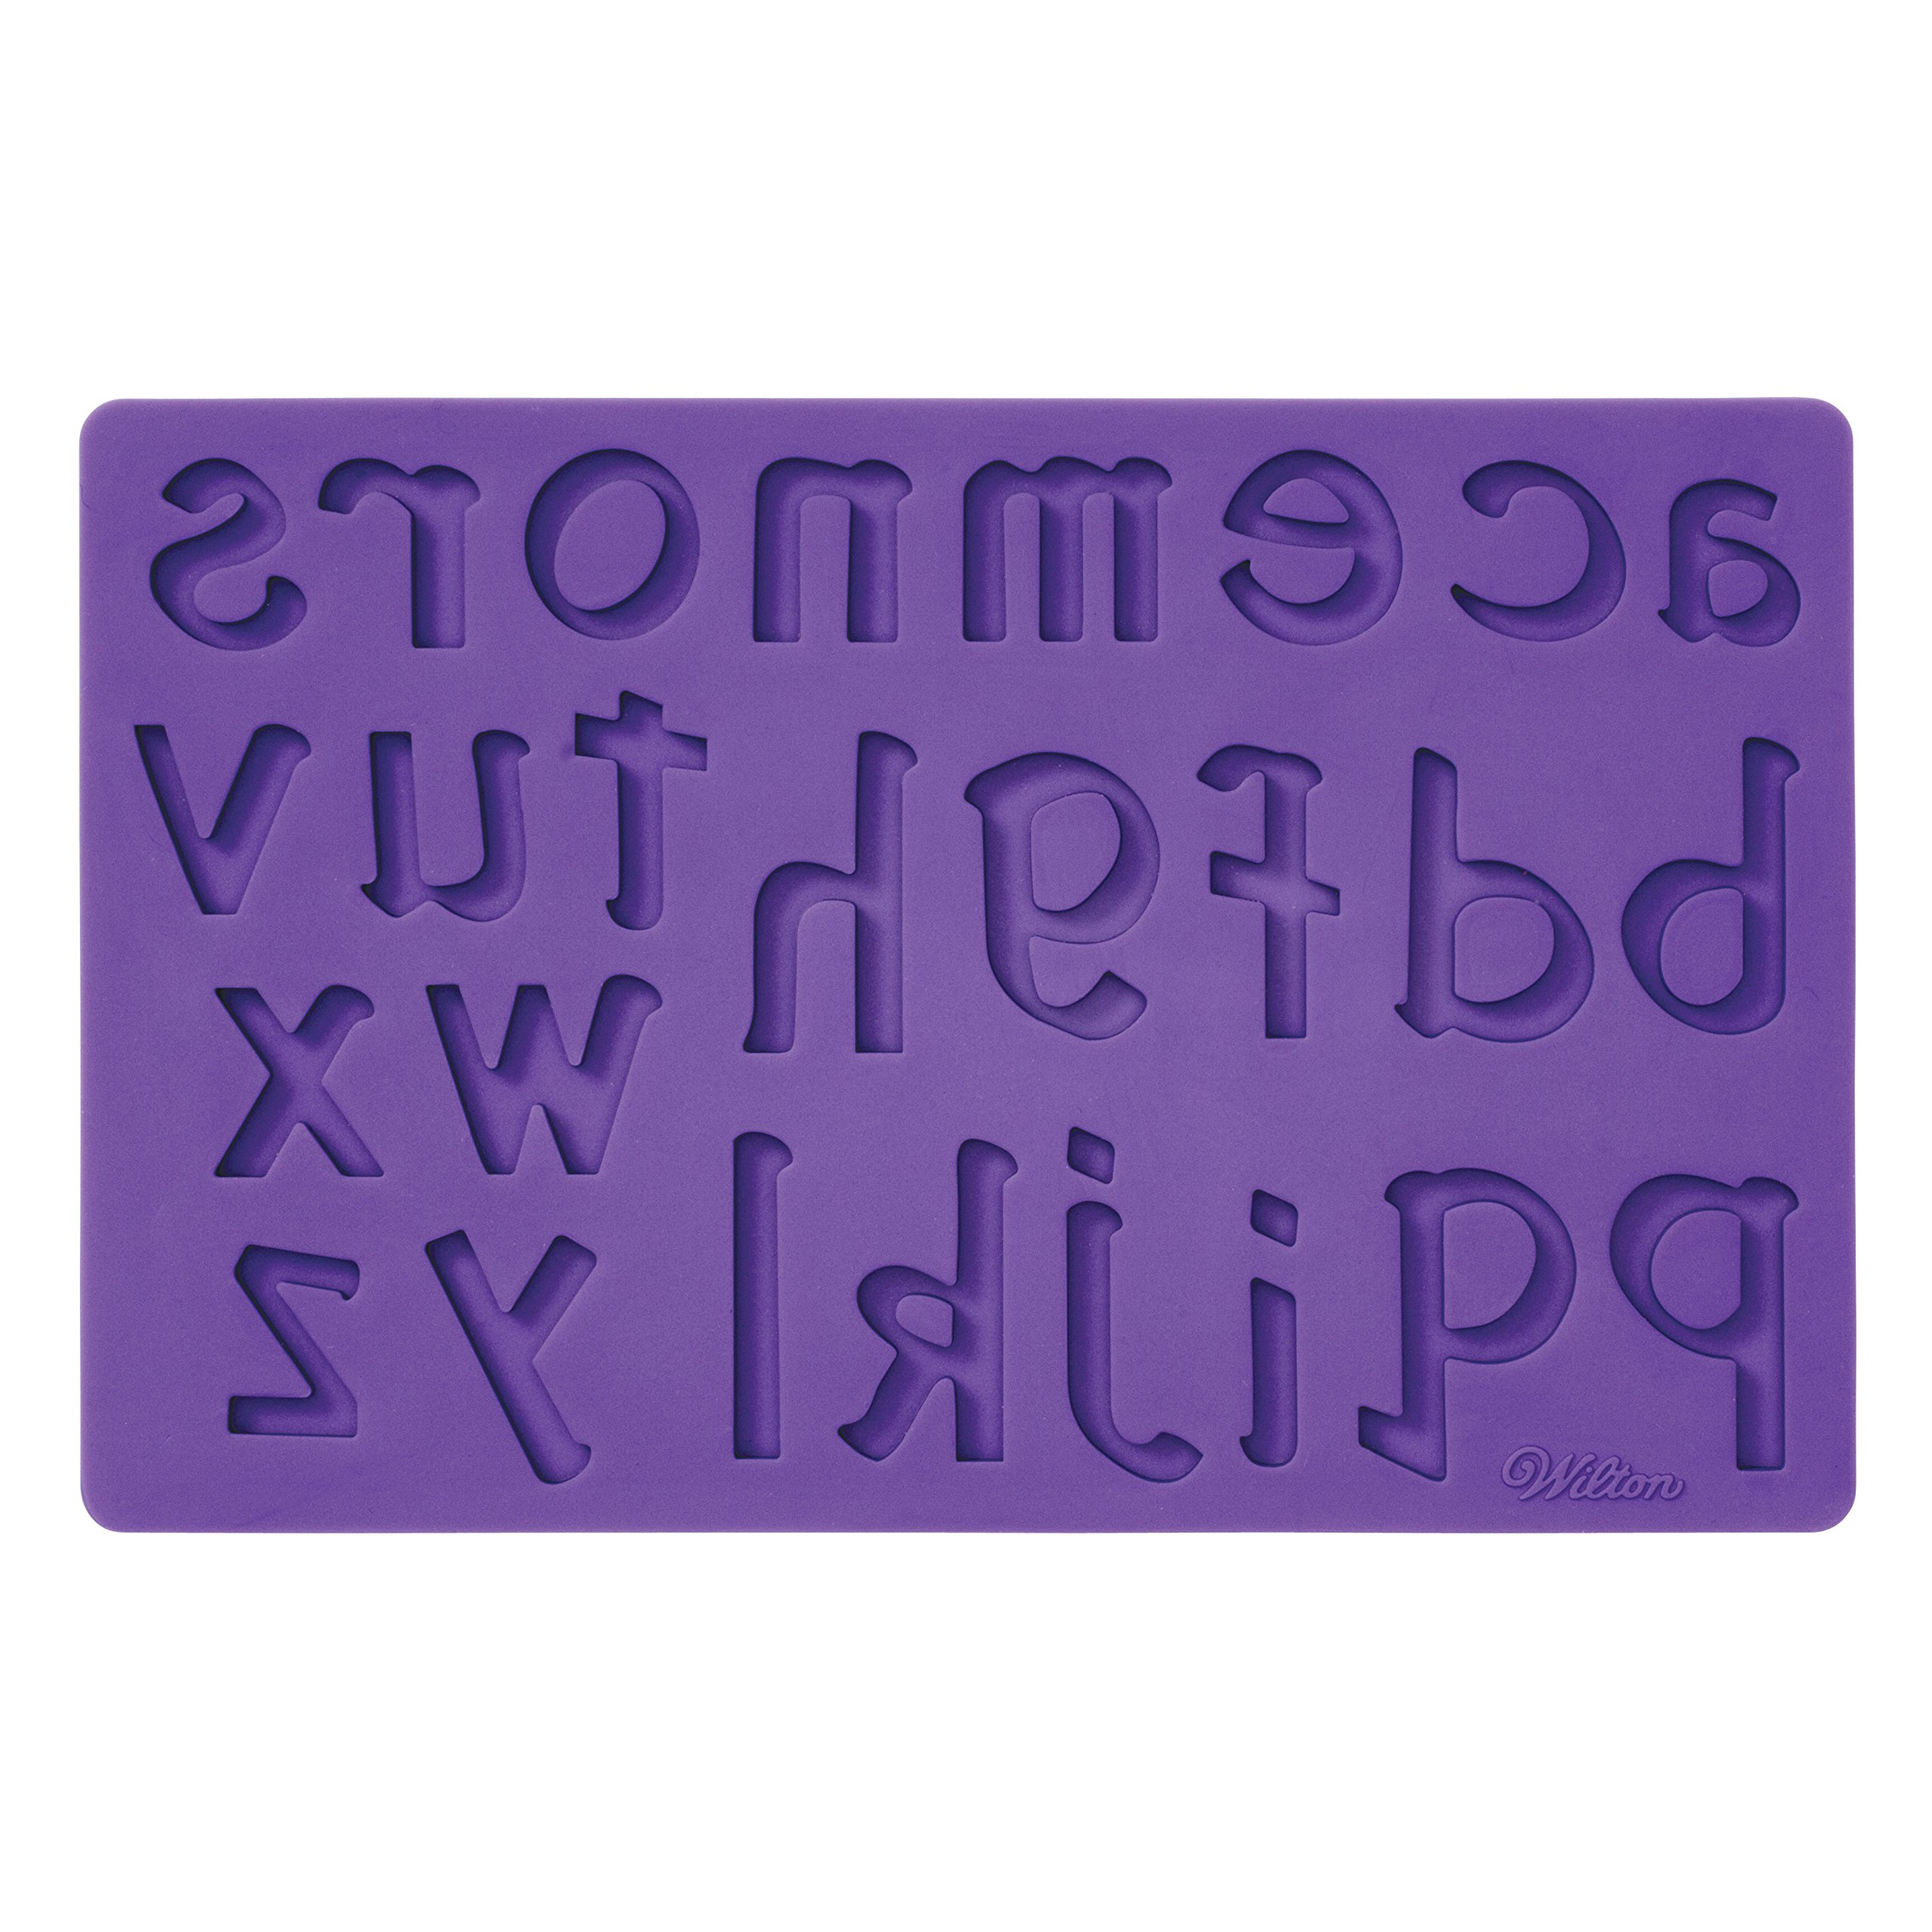 Wilton Silicone Letters and Numbers Fondant and Gum Paste Molds, 4-Piece - Cake Decorating Supplies by Wilton (Image #8)